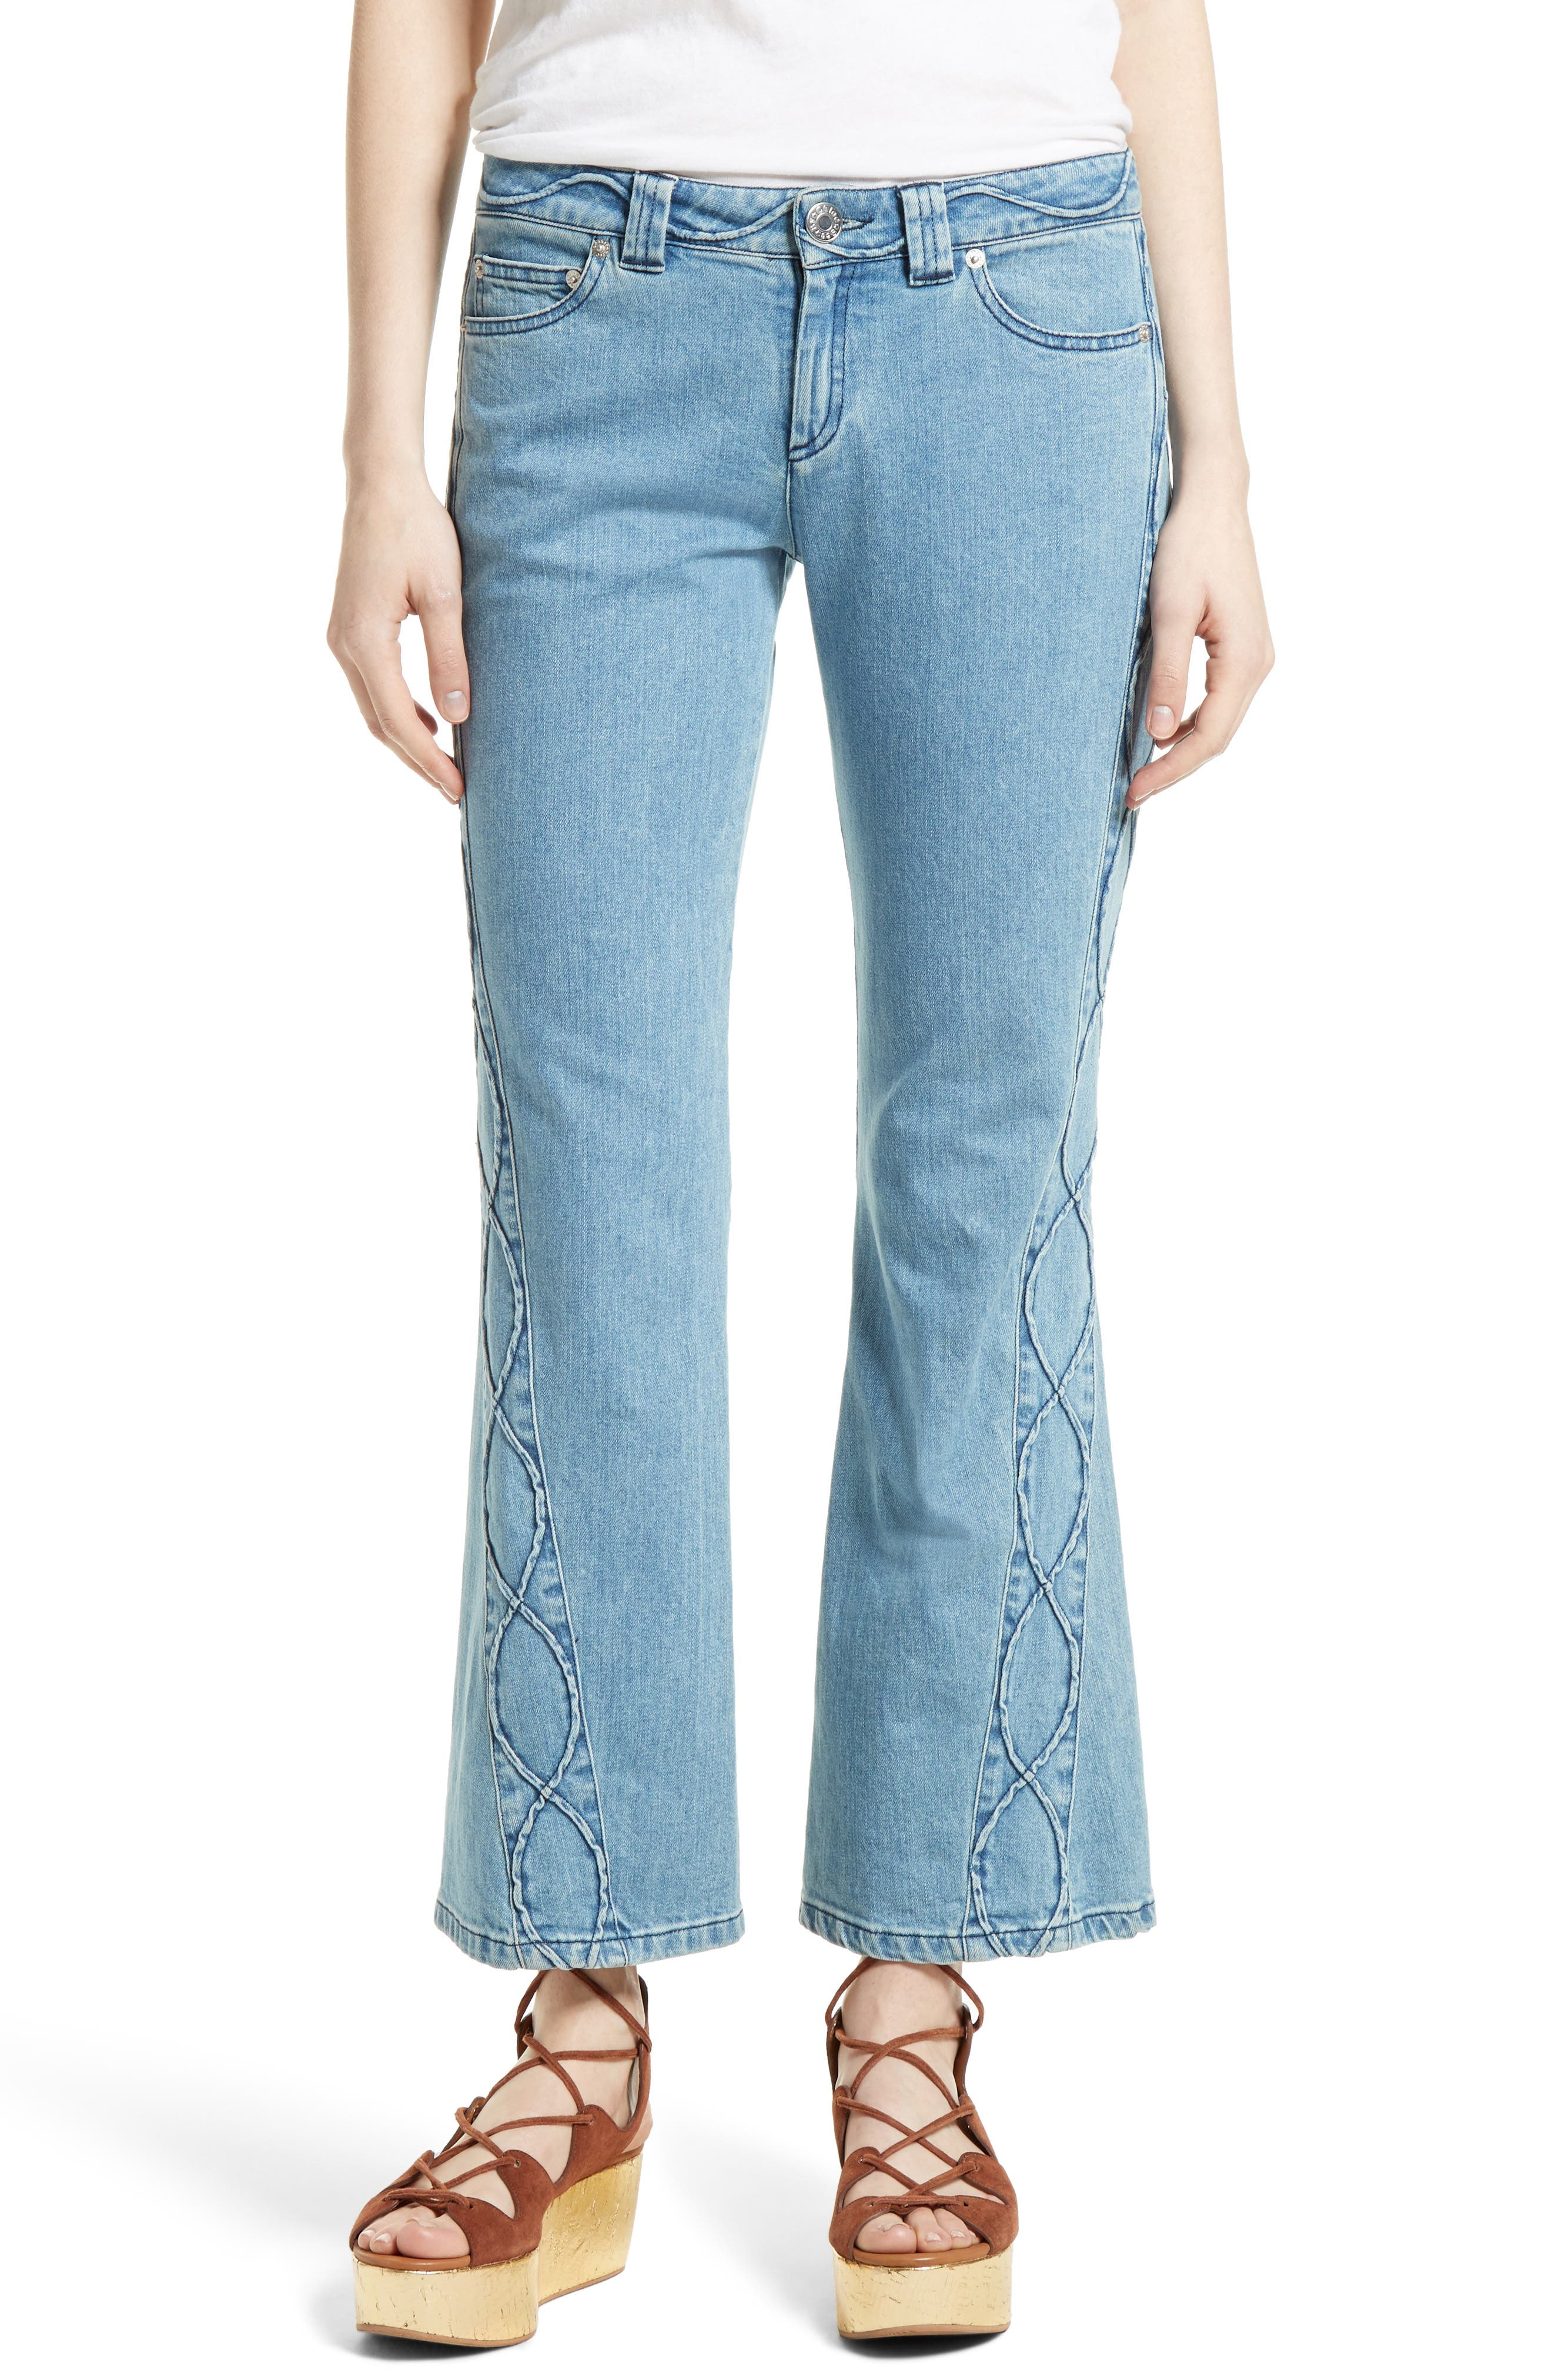 Main Image - See by Chloé Iconic Ankle Flare Jeans (Stoned Indigo)